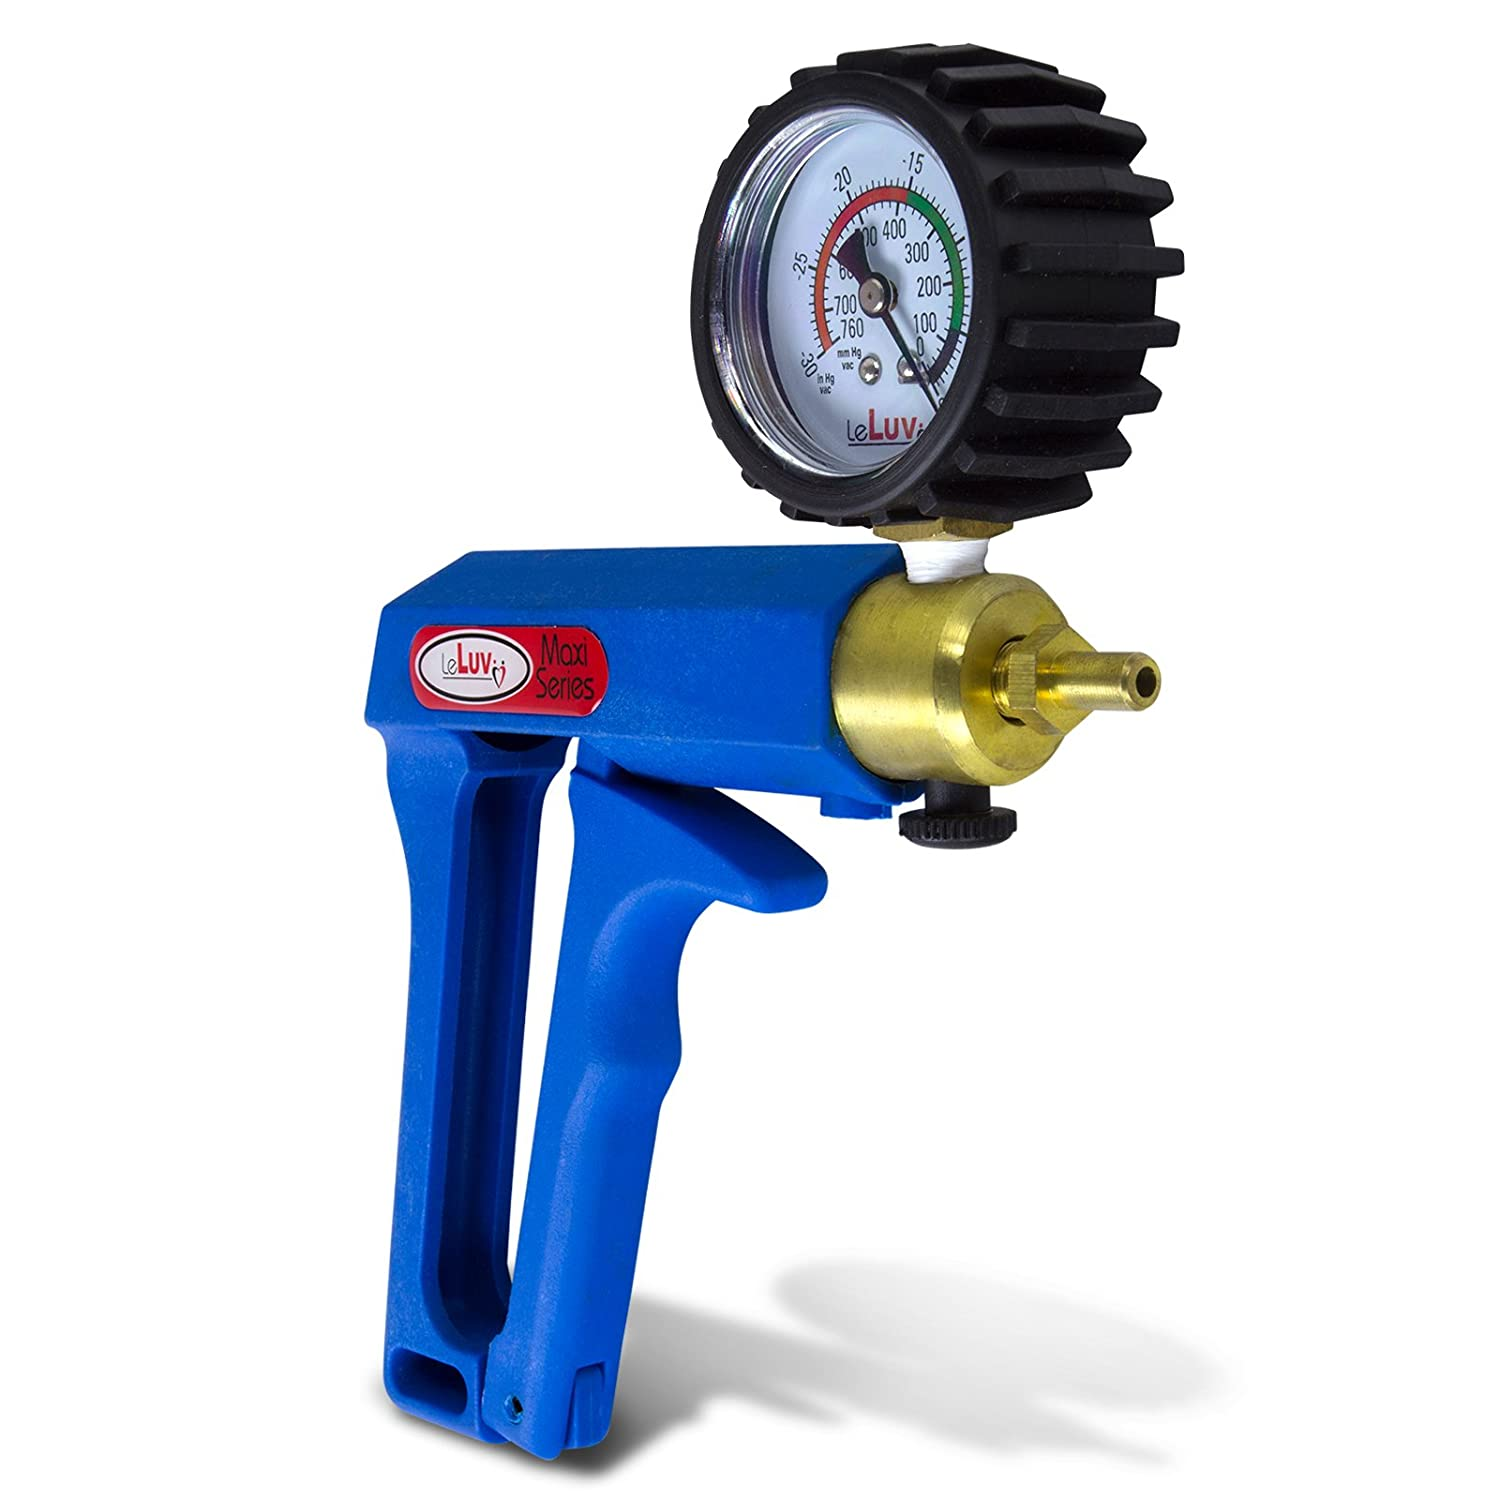 LeLuv Vacuum Pump Maxi Ergonomic with Release Valve and Rubber Protected Gauge Blue